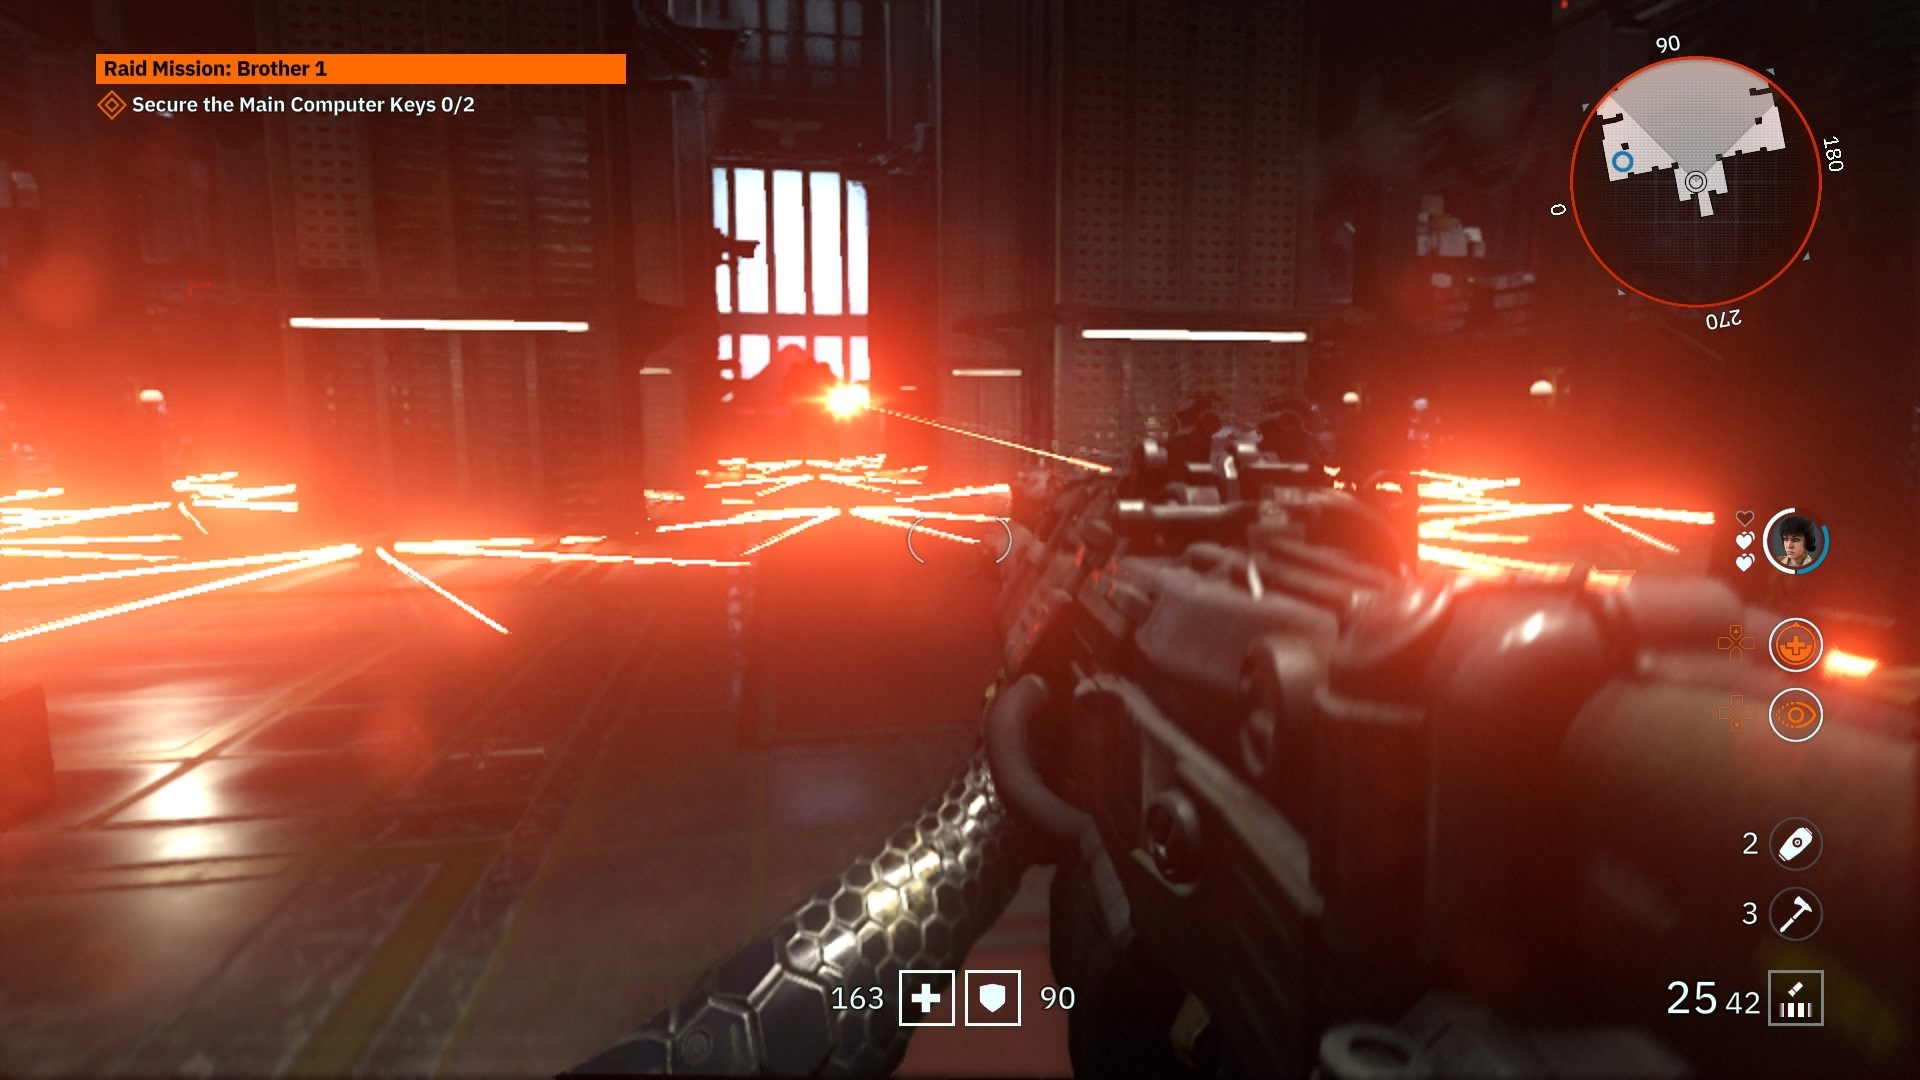 Review: Wolfenstein Youngblood offers plenty of blood and